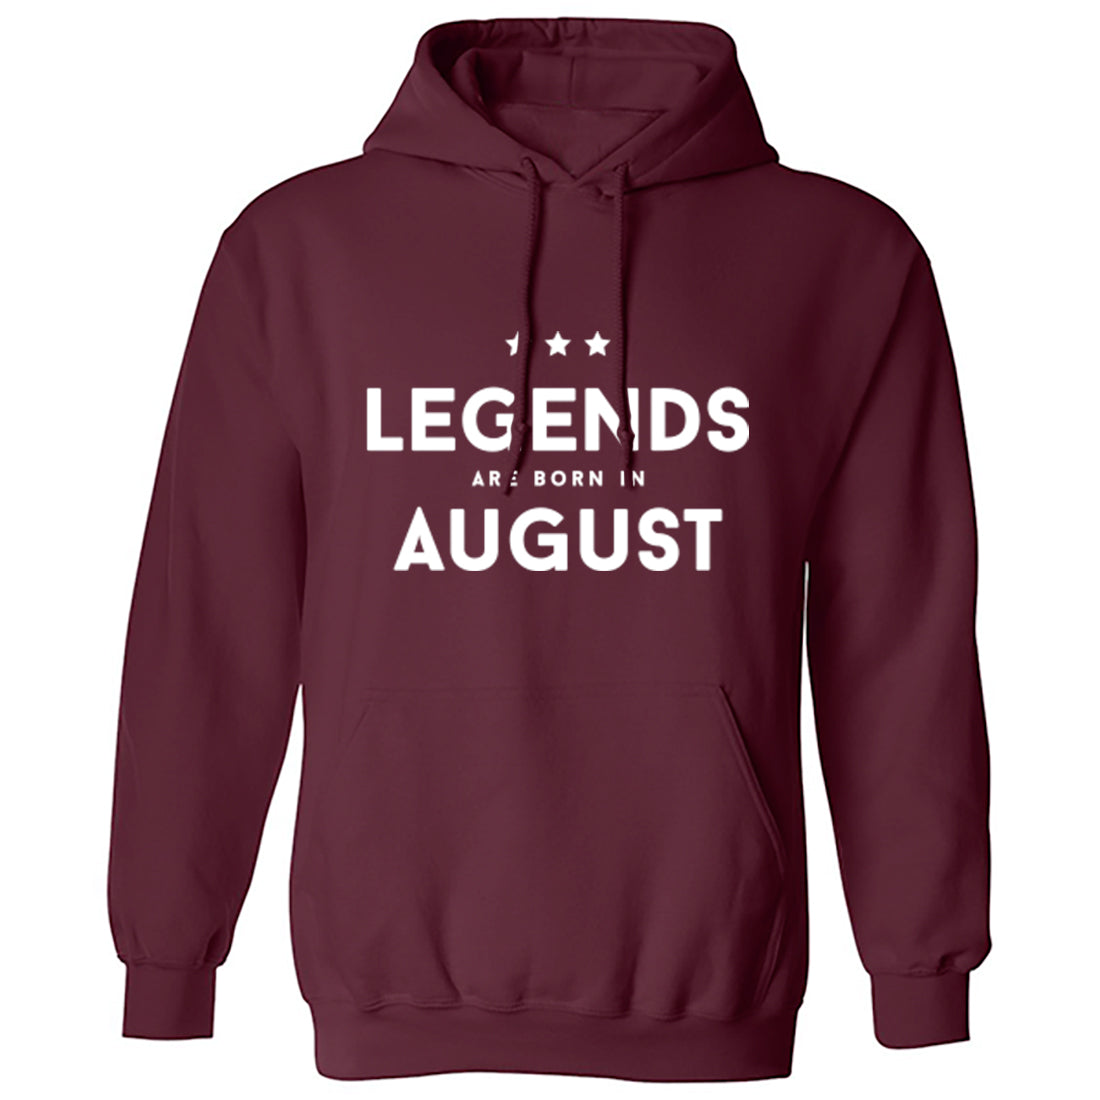 Legends Are Born In August Unisex Hoodie K1426 - Illustrated Identity Ltd.